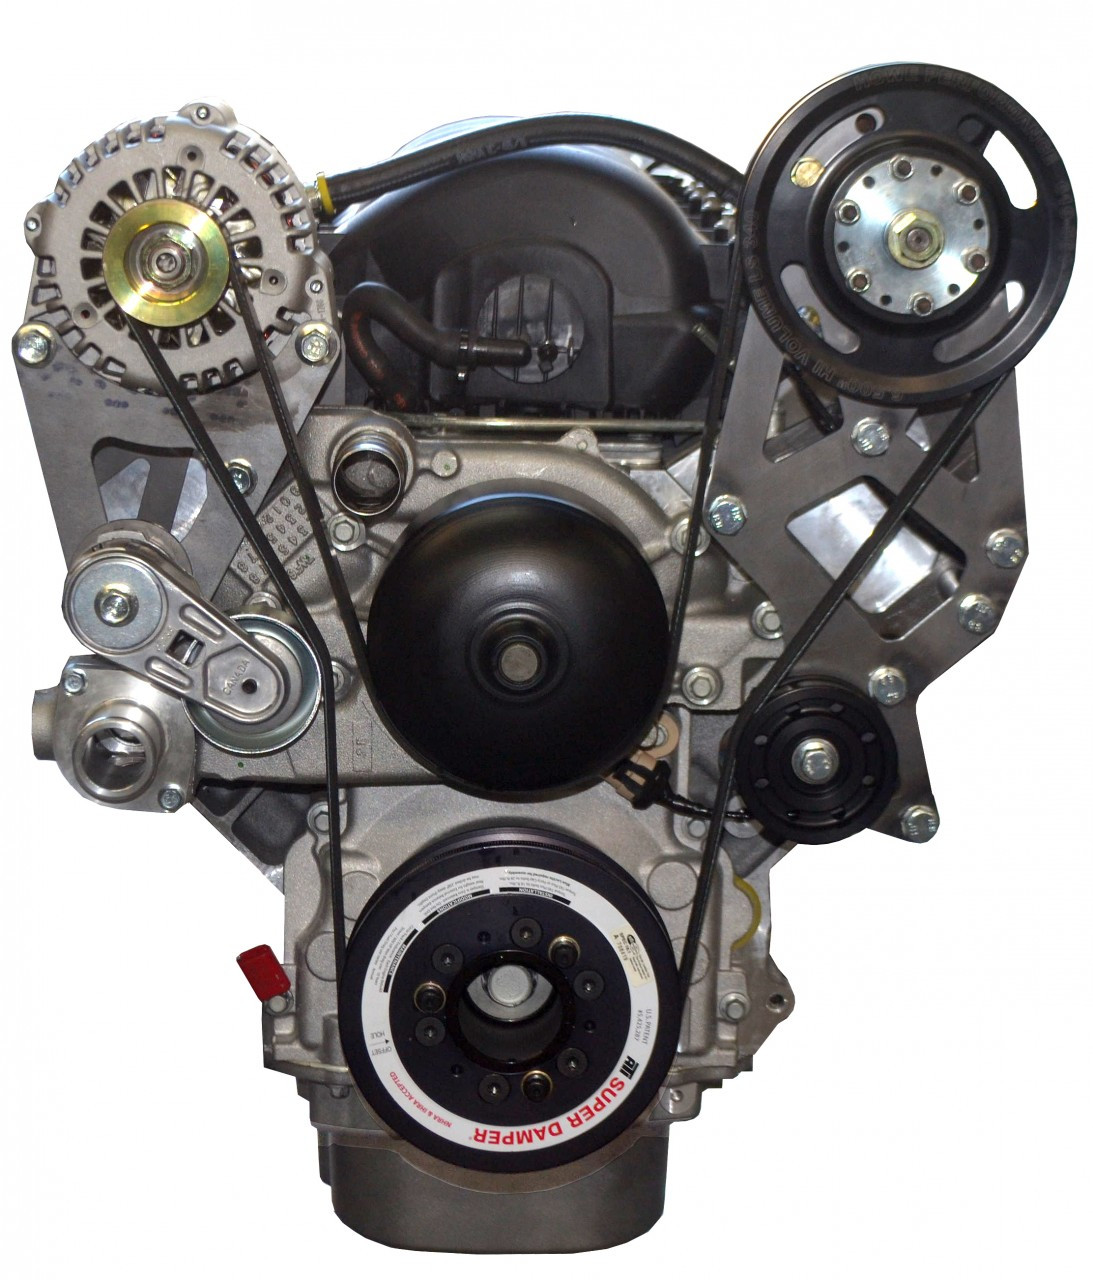 LS3 6 2L 430 HP Engine Assembly - 6100 Race